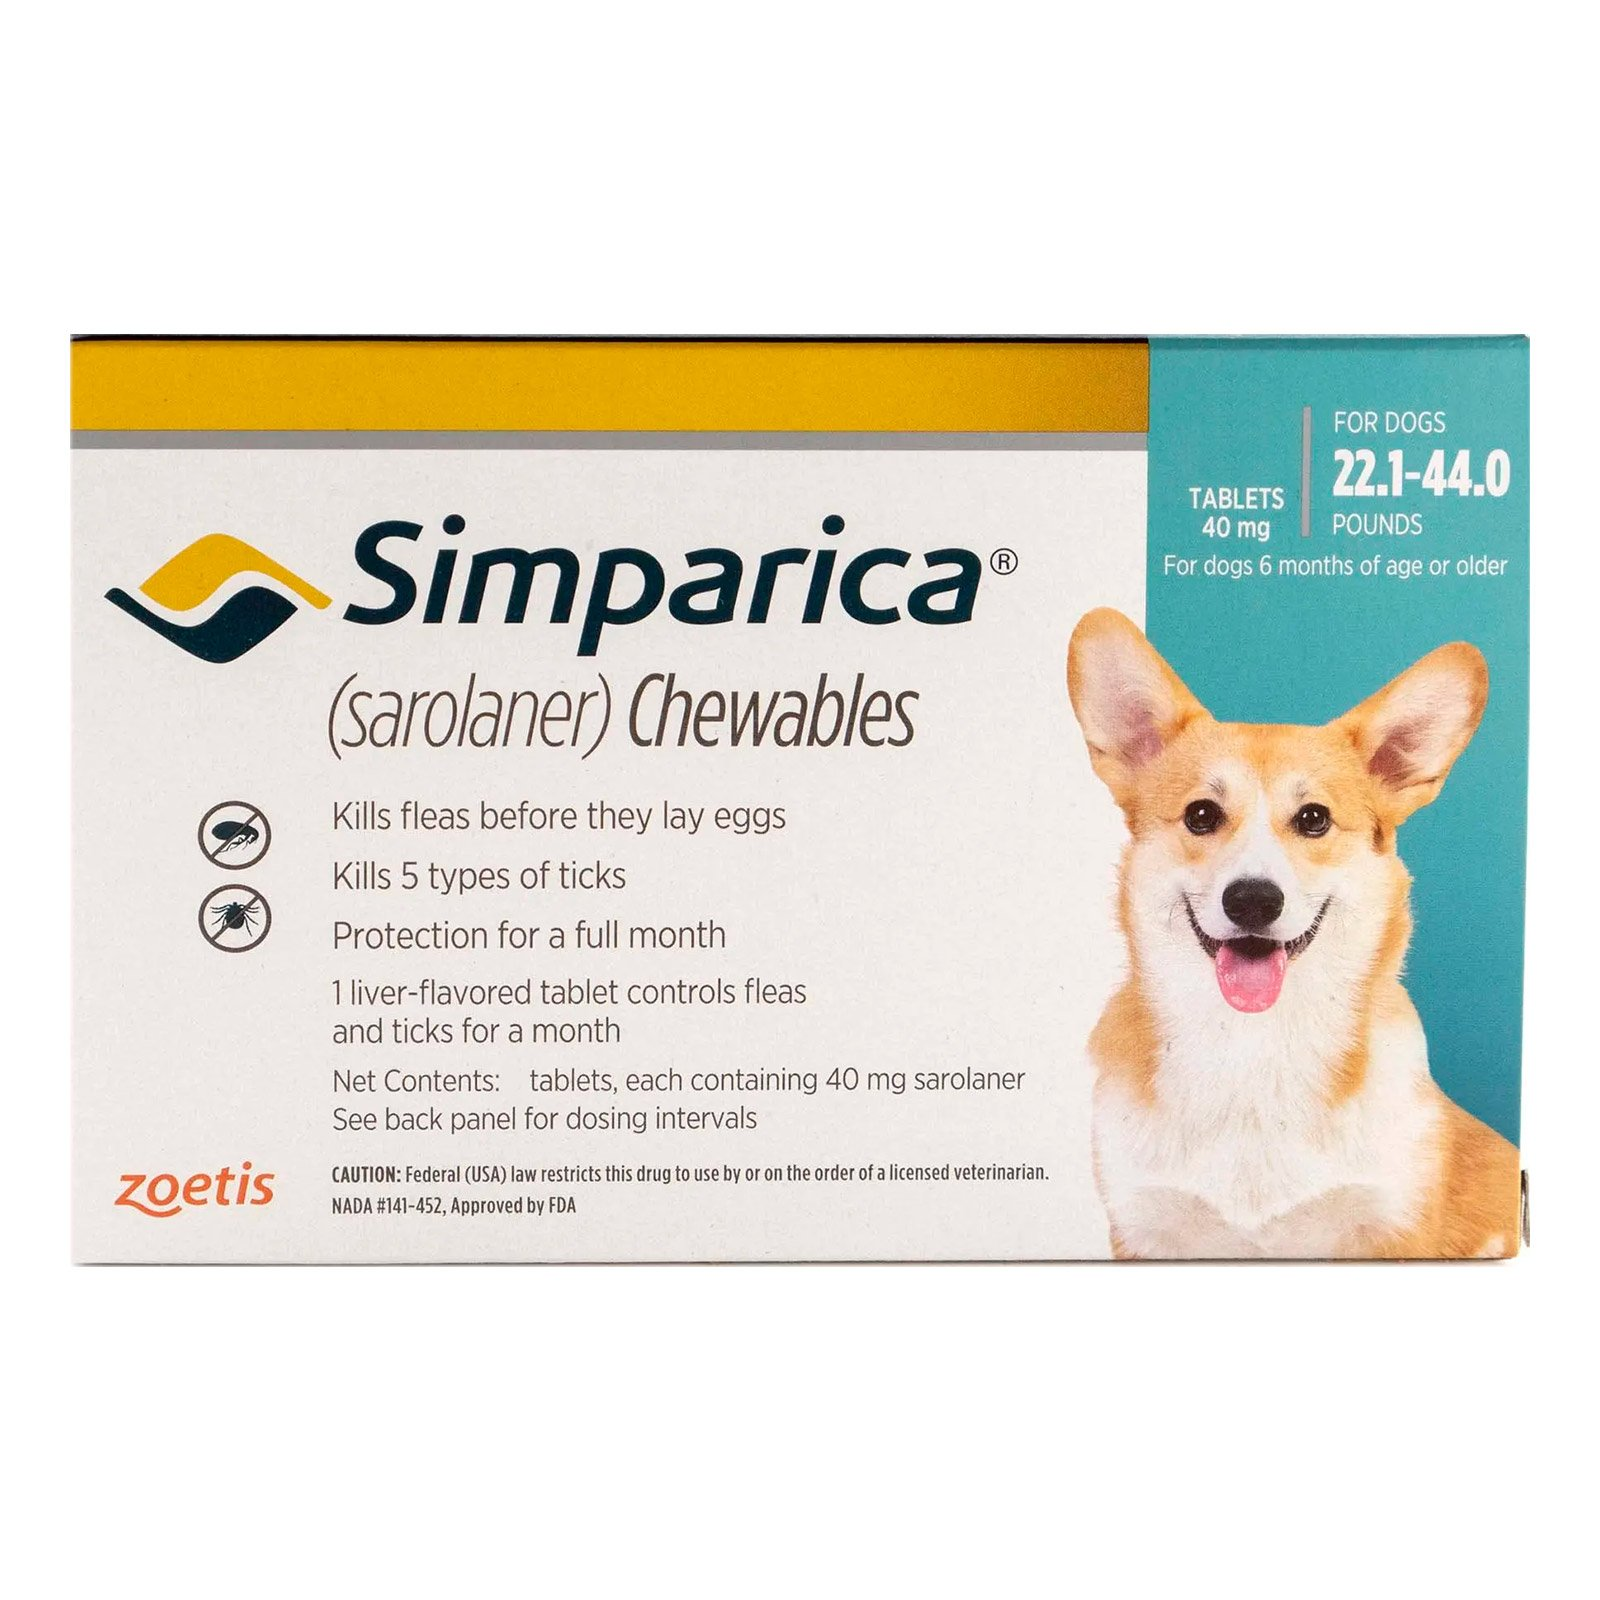 636855377655501808-simparica-22-1-44-0-lbs-1-chewable-tab-6[1]